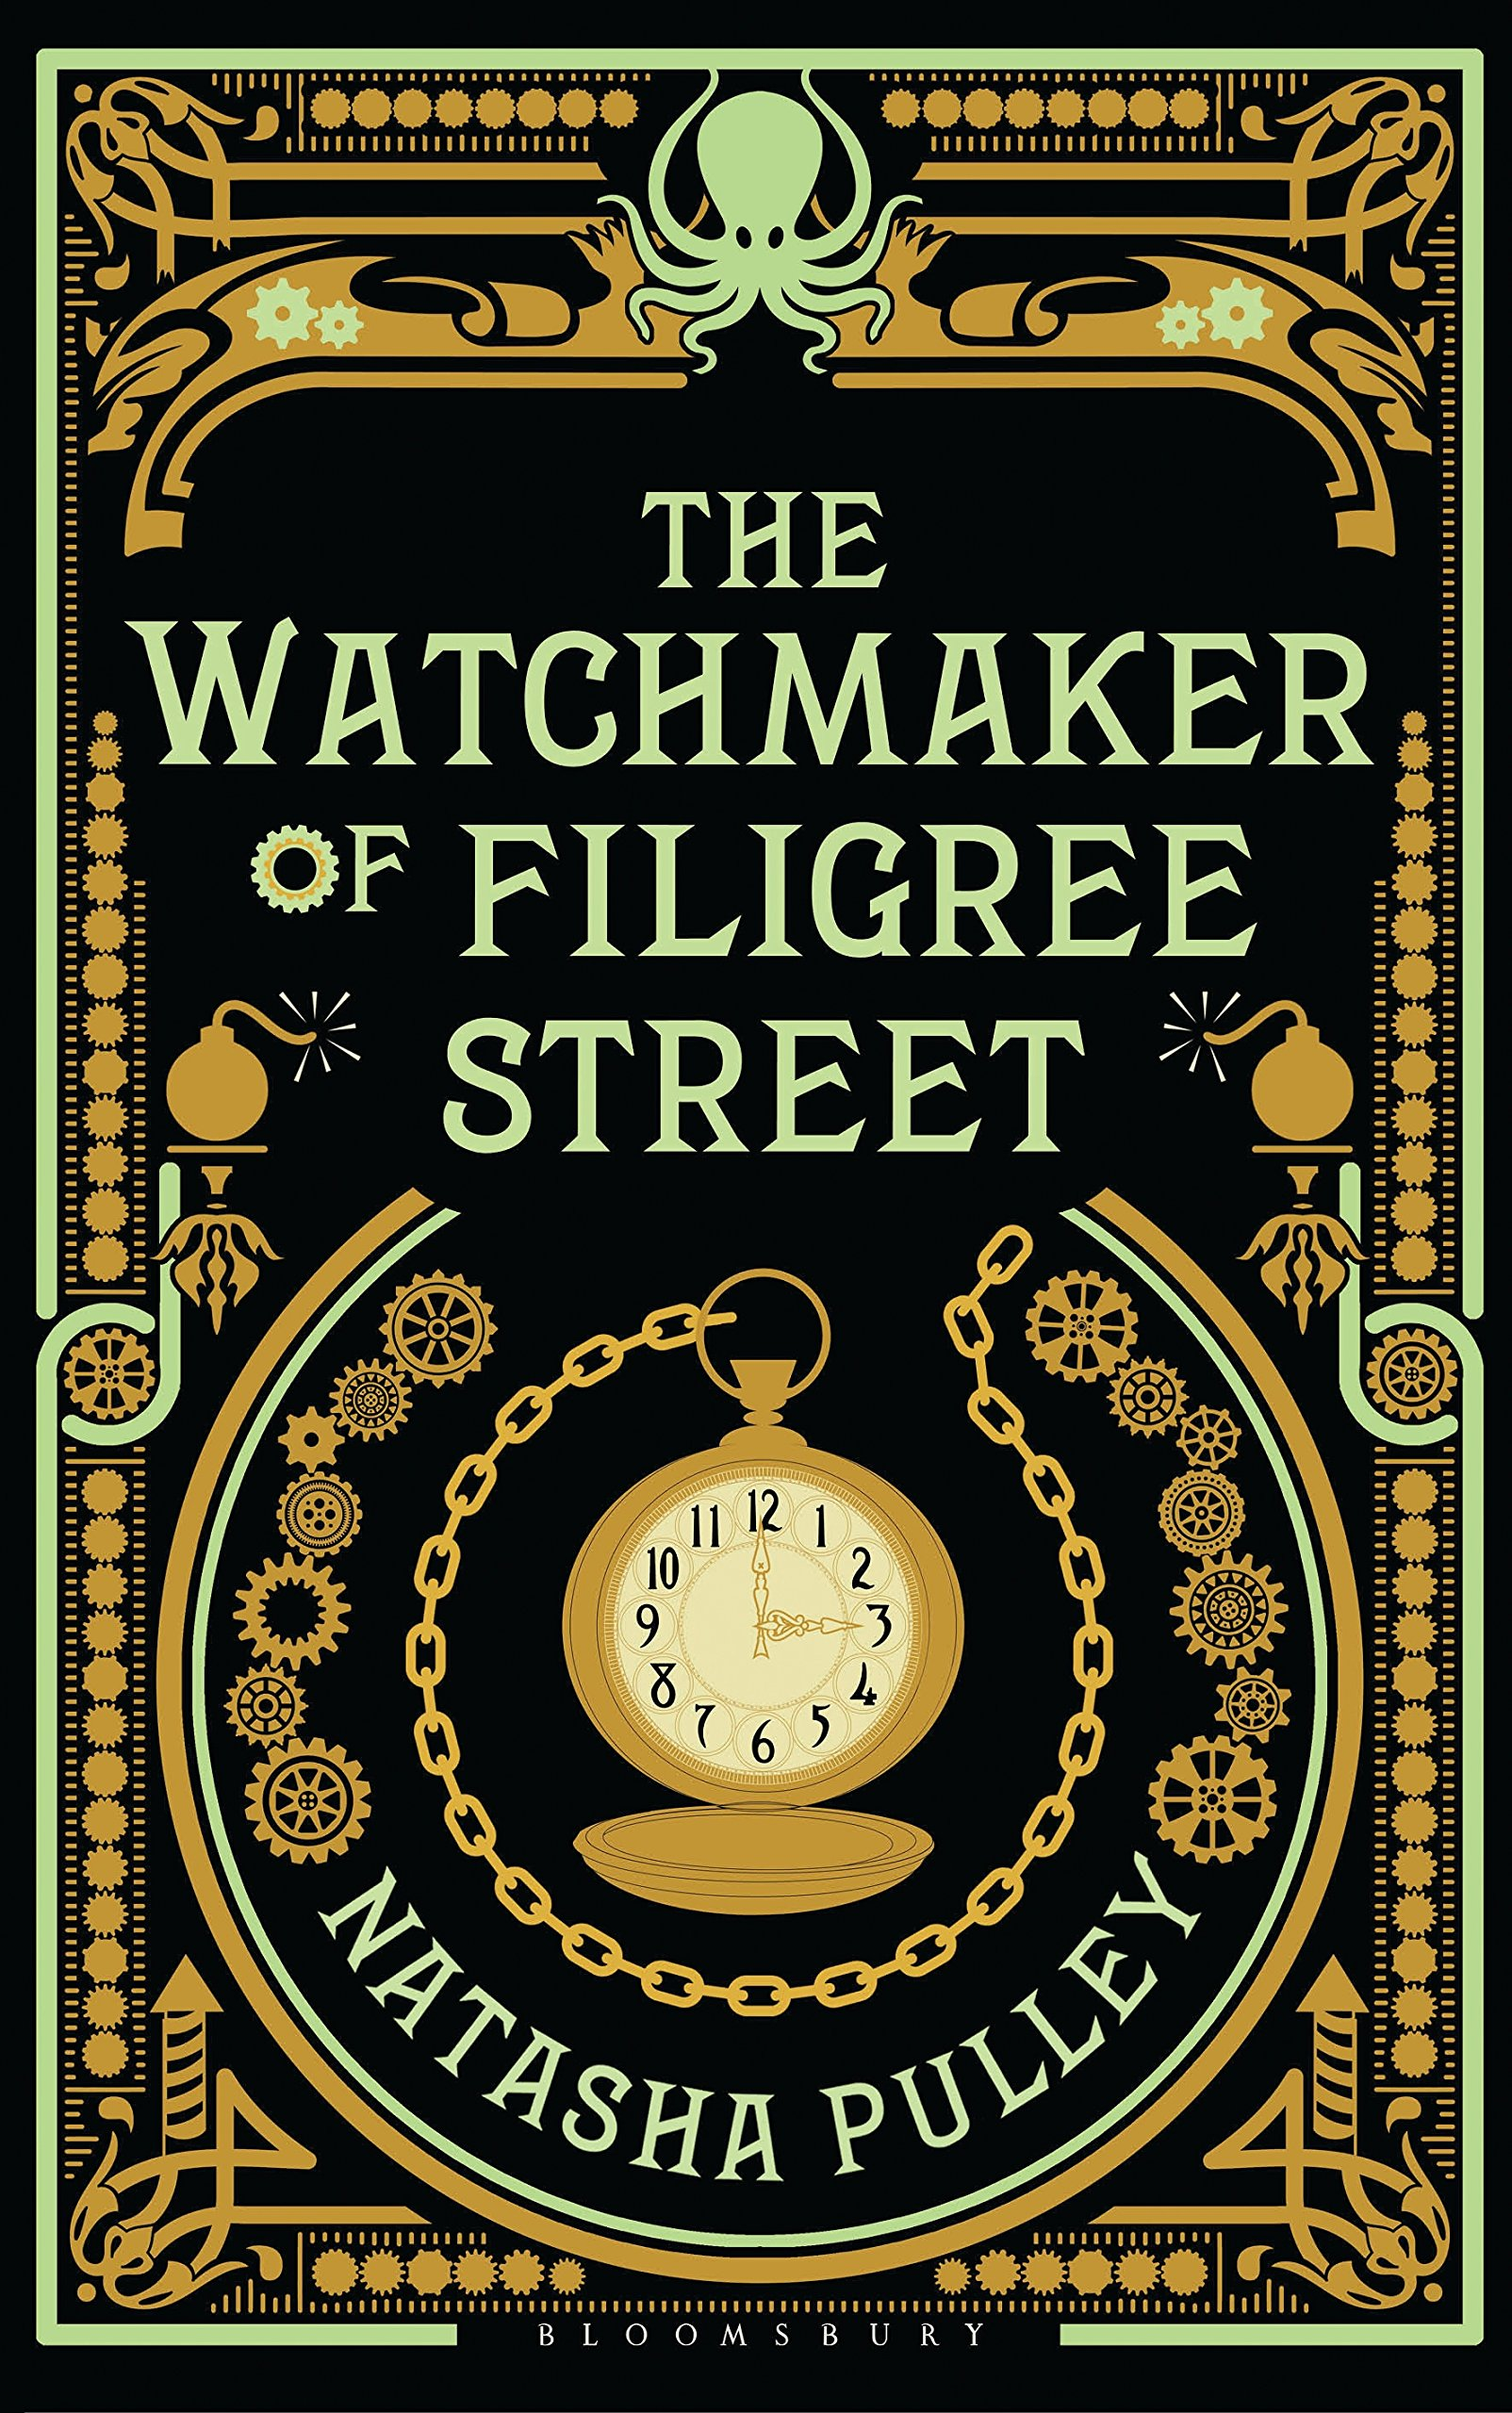 BWW Review: THE WATCHMAKER OF FILIGREE STREET by Natasha Pulley